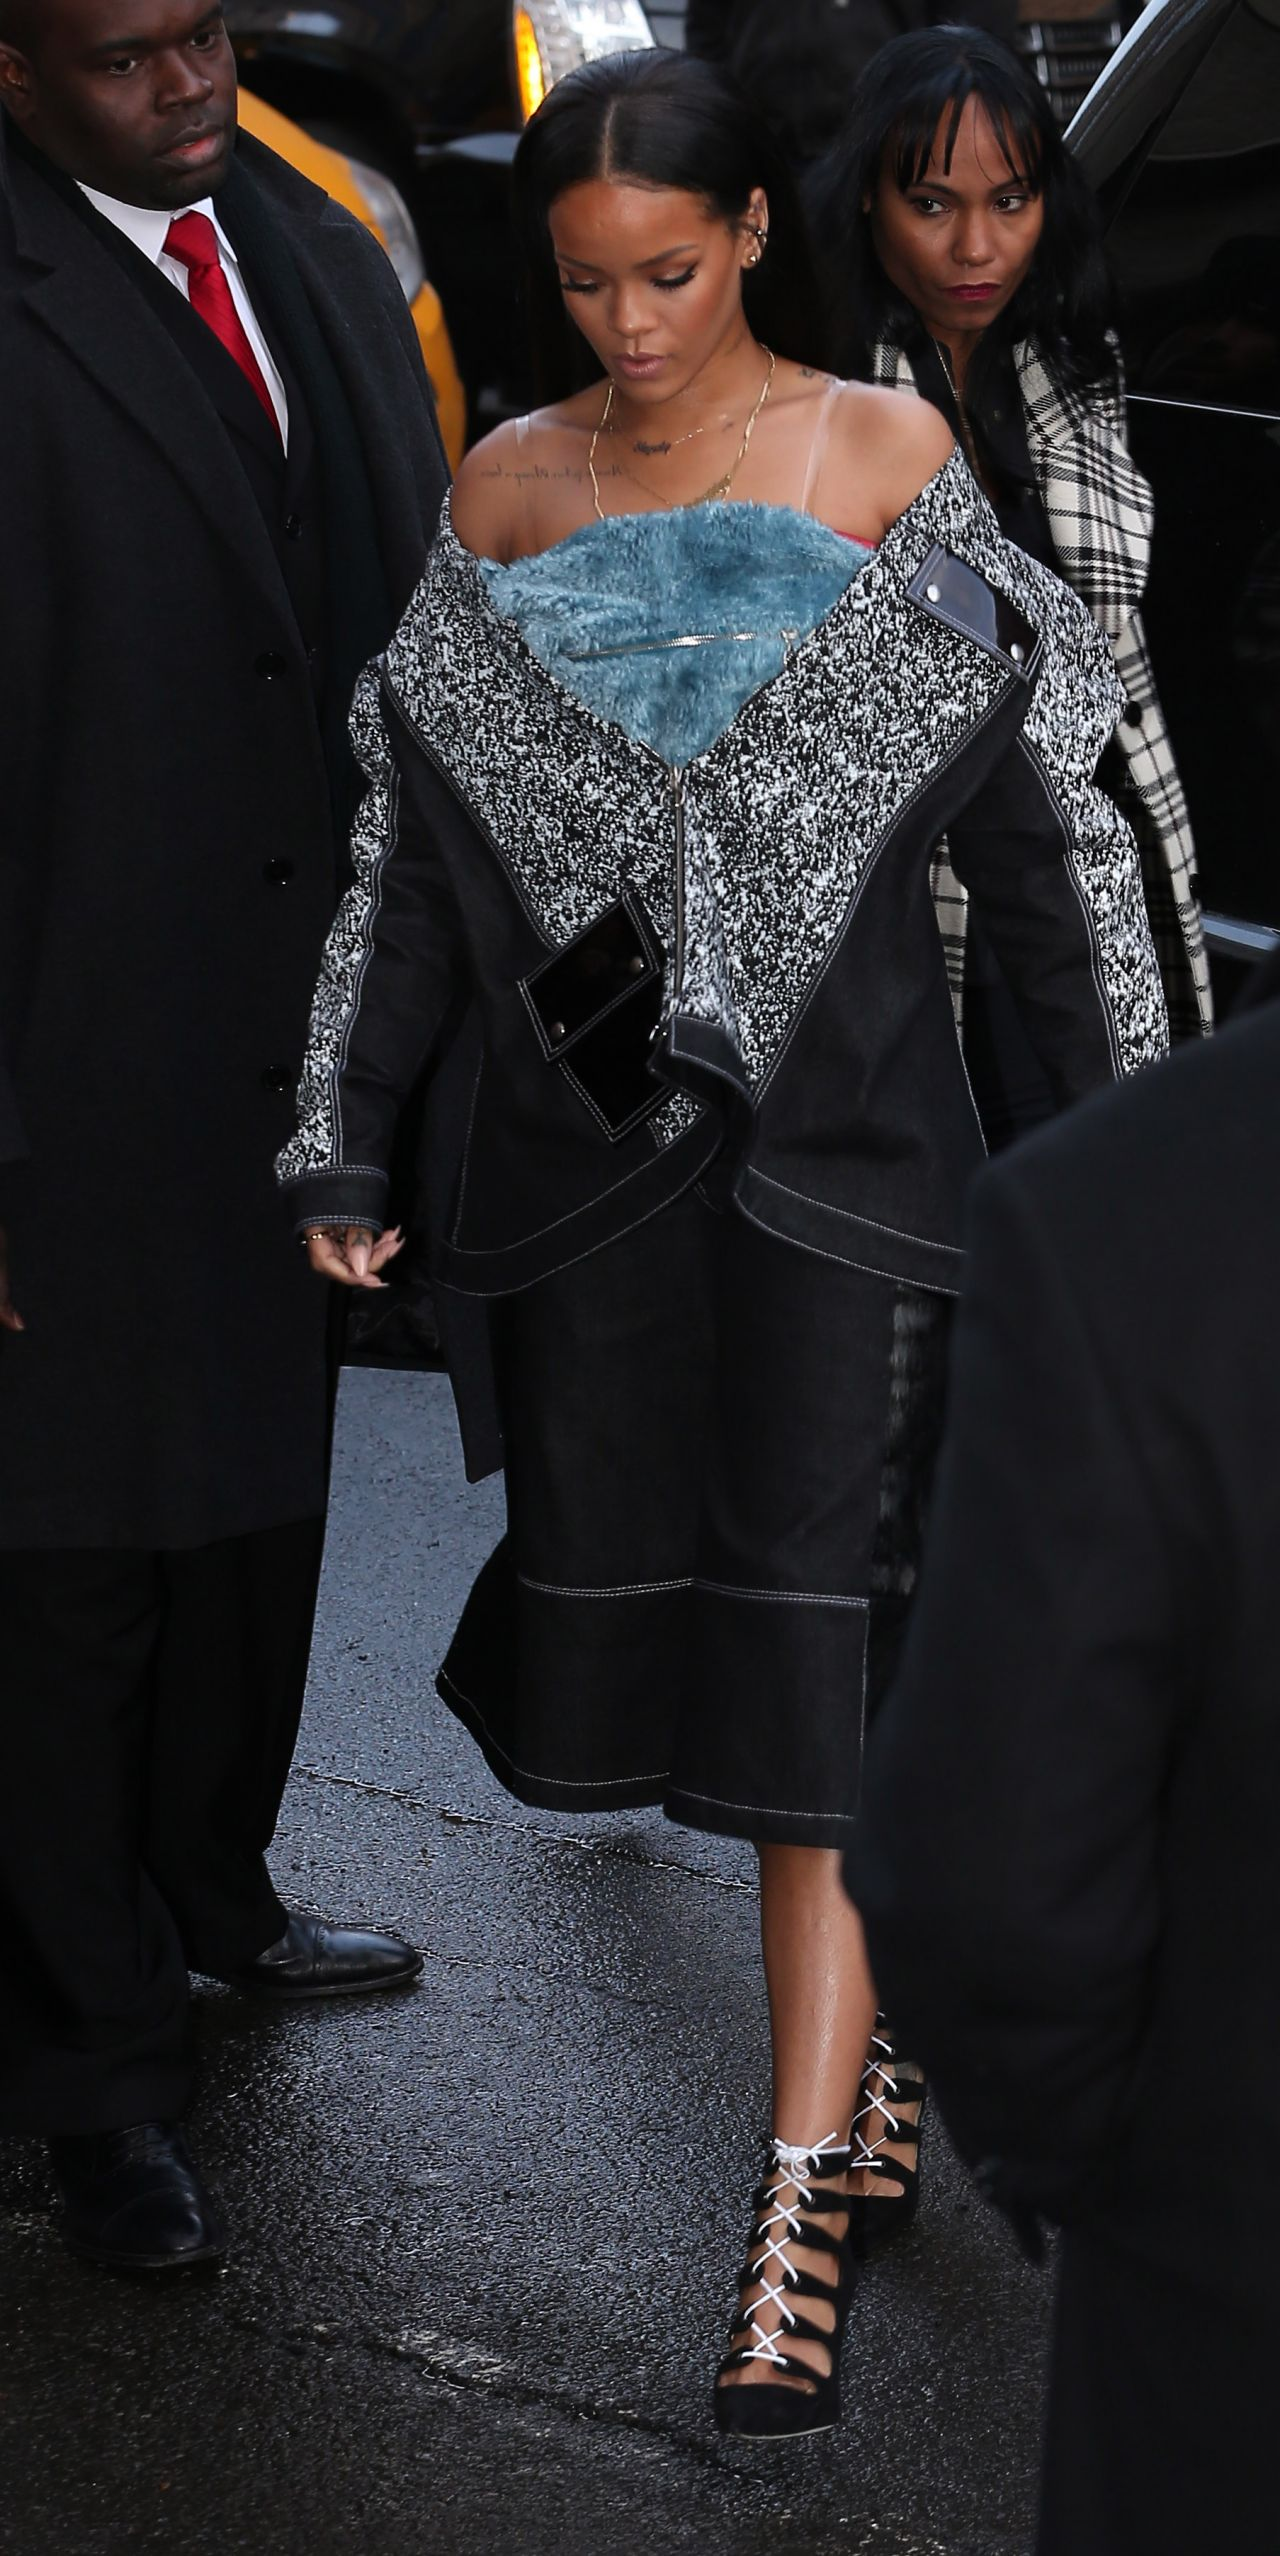 rihanna-fashion-arriving-at-kanye-west-s-fashion-show-in-new-york-city_4